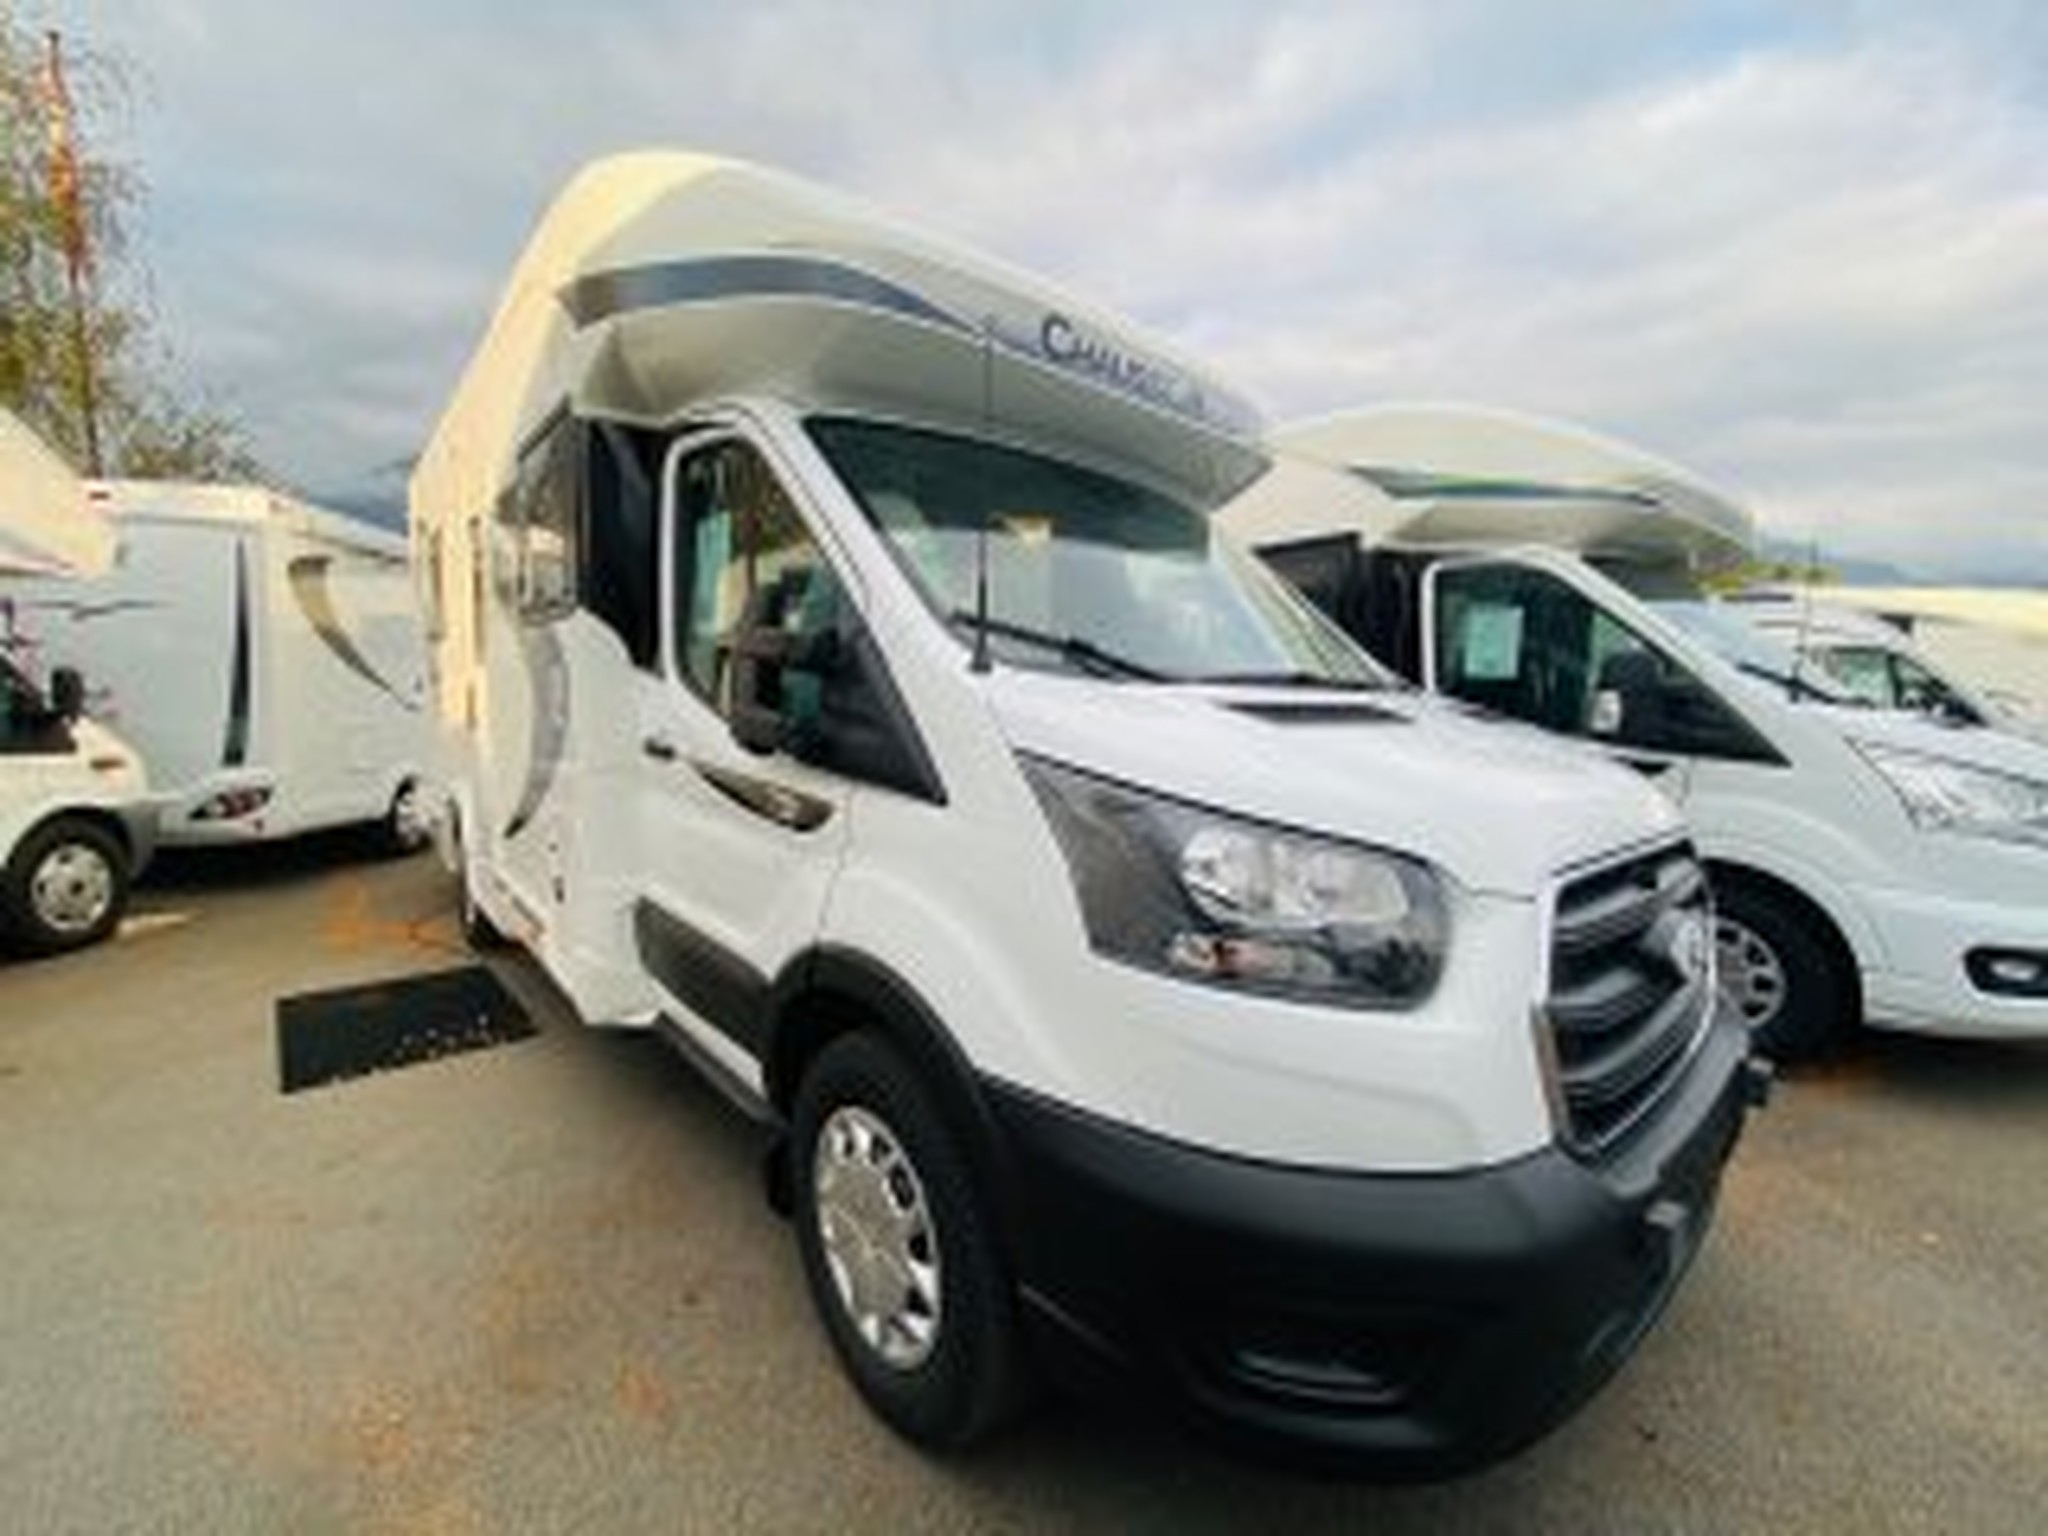 Camping-car CHAUSSON 720 First Line